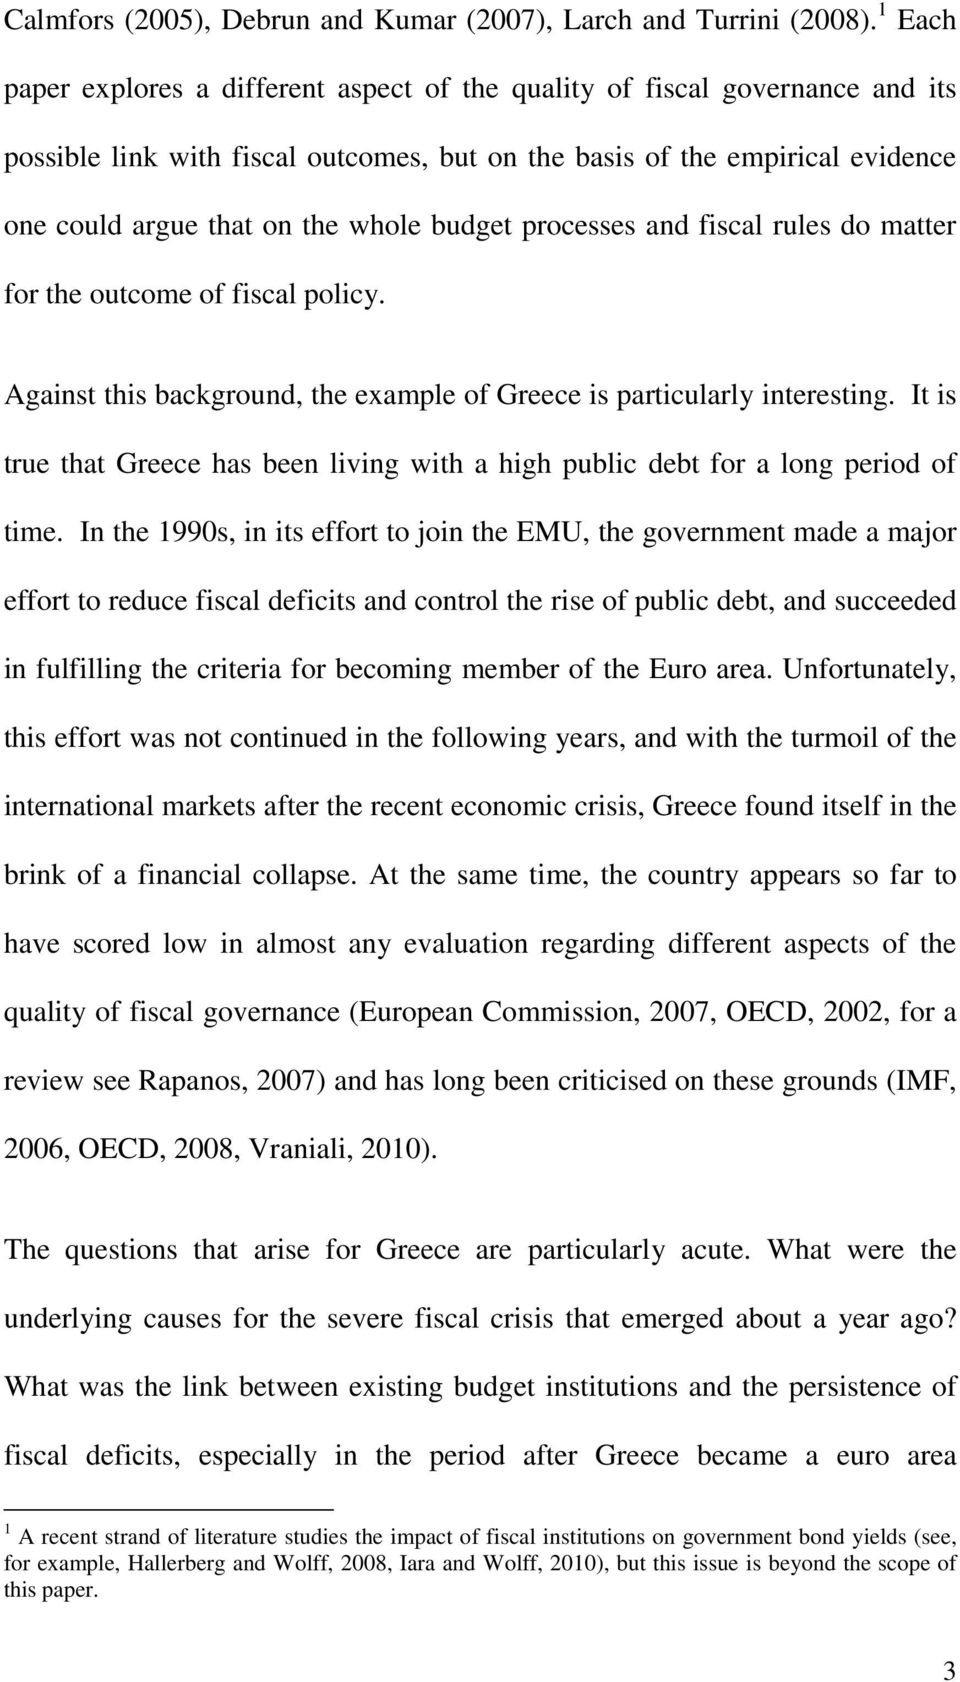 budget processes and fiscal rules do matter for the outcome of fiscal policy. Against this background, the example of Greece is particularly interesting.